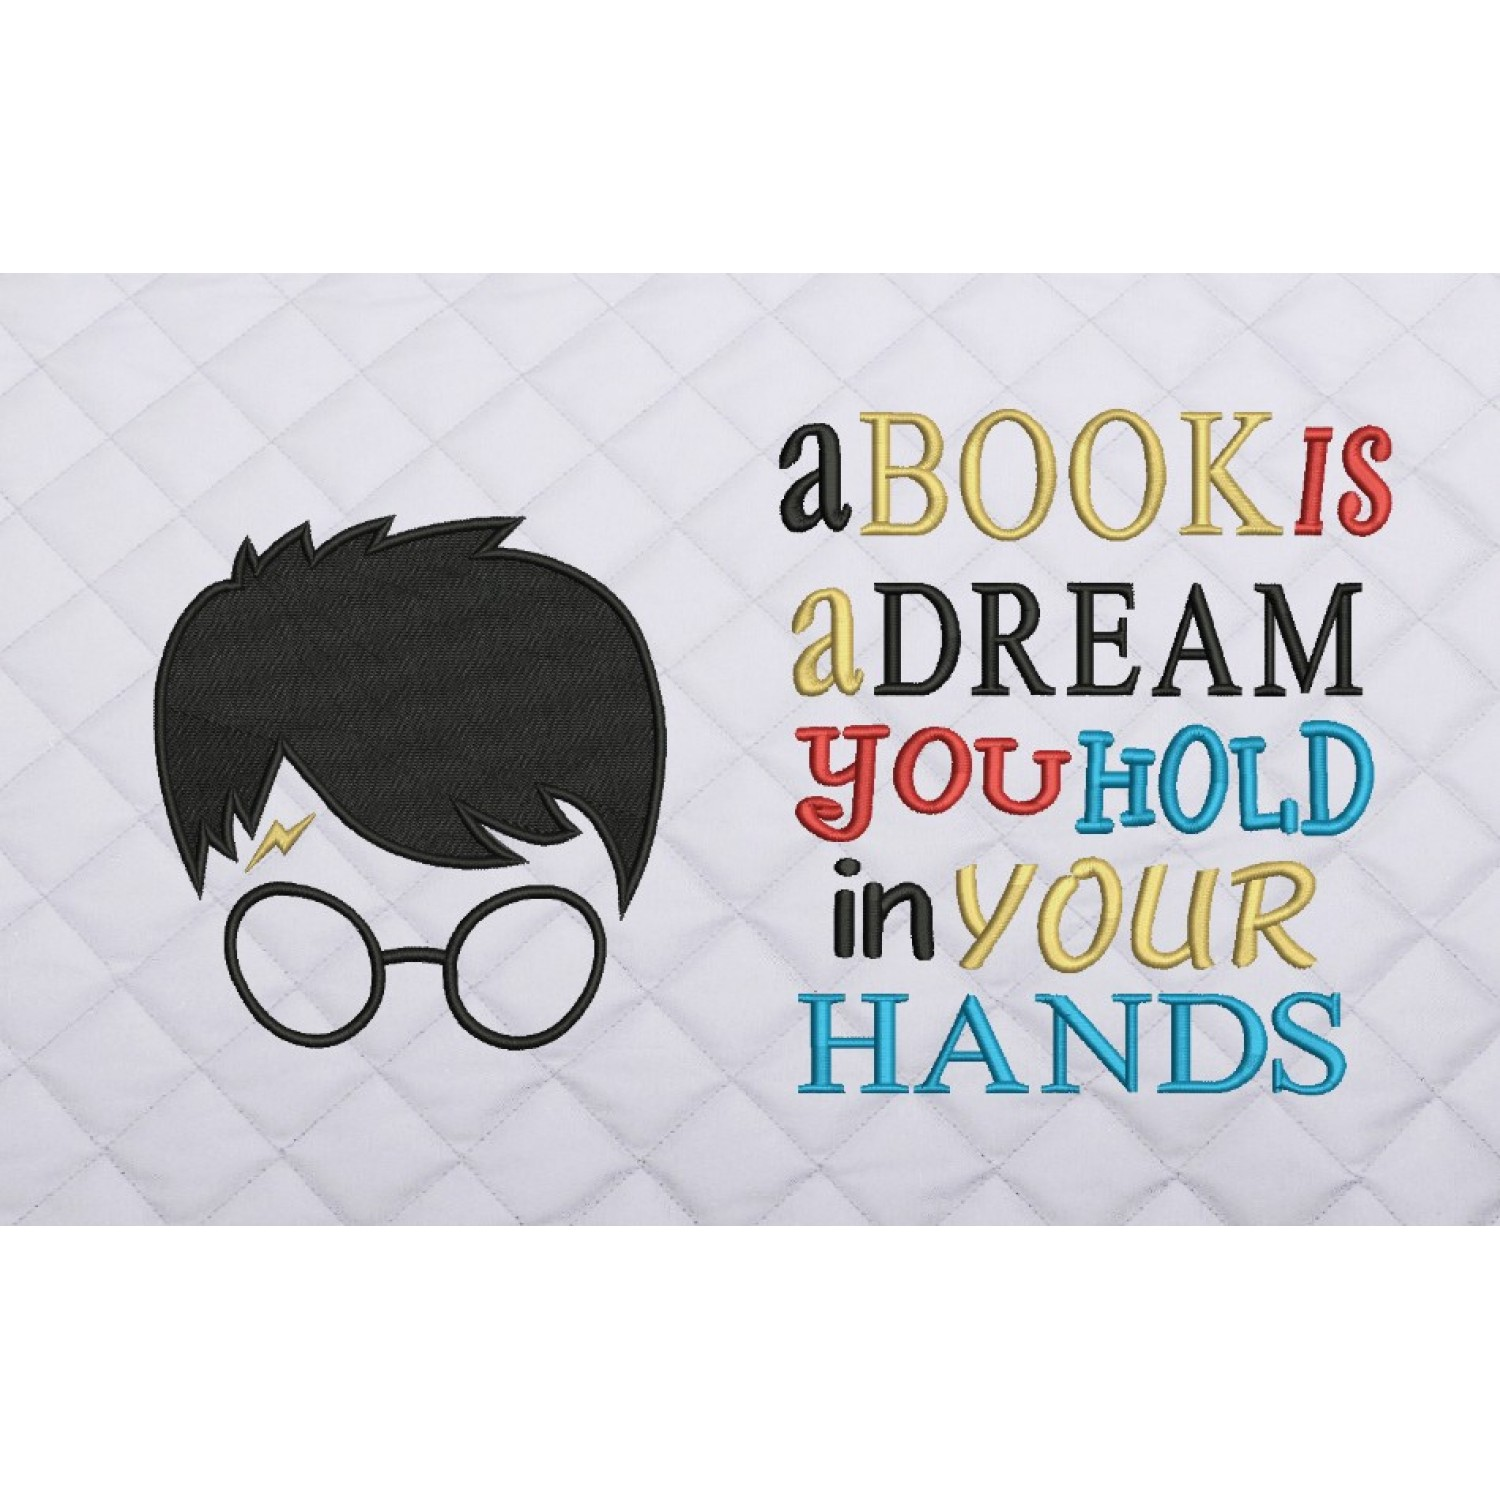 Harry potter face embroidery with a book is a dream